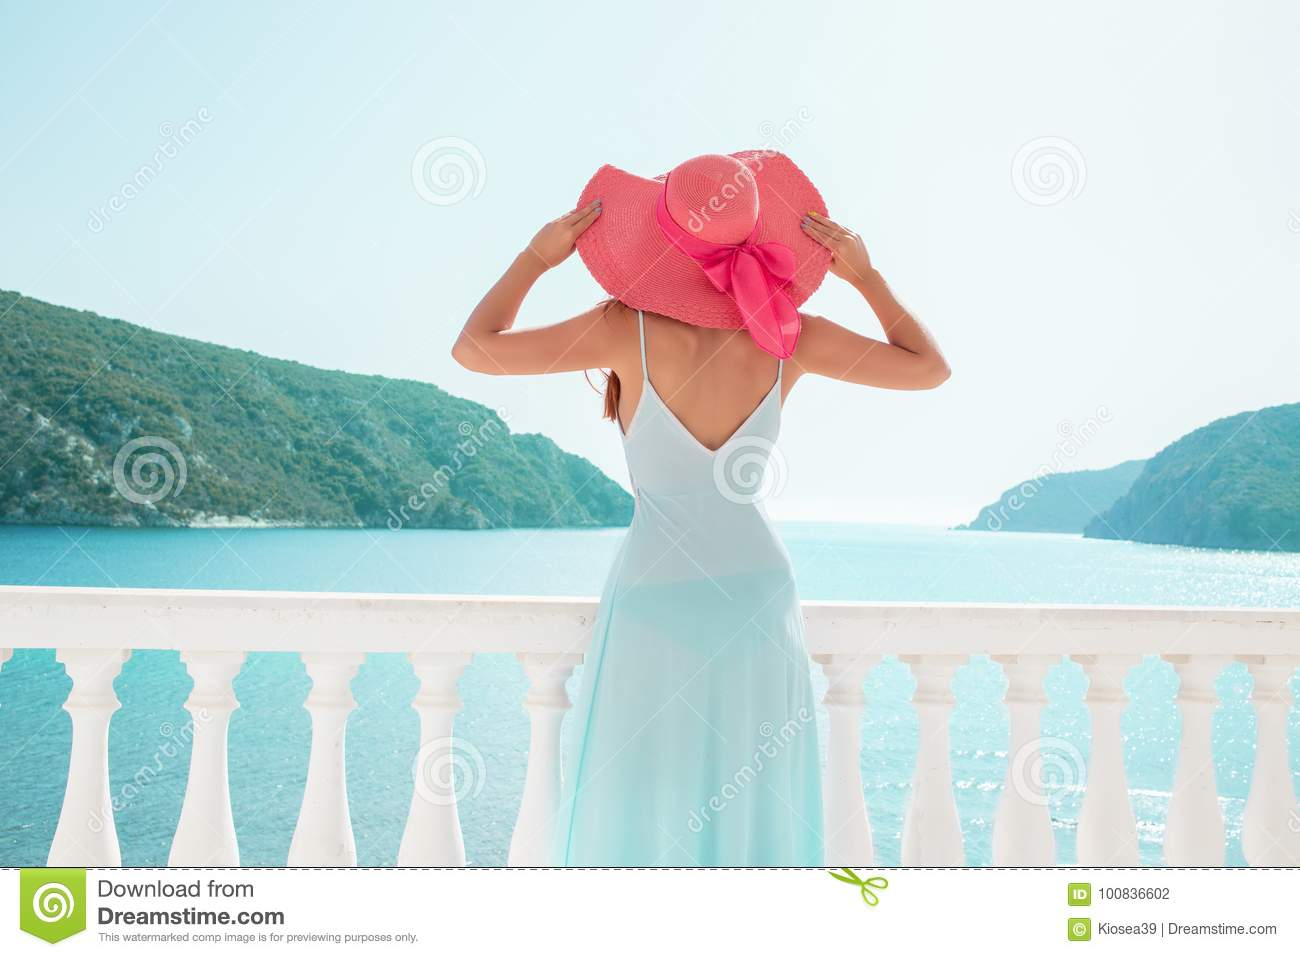 Europe Greece travel vacation. Woman looking at sea view. Elegant young lady living fancy jetset lifestyle wearing dress on holida